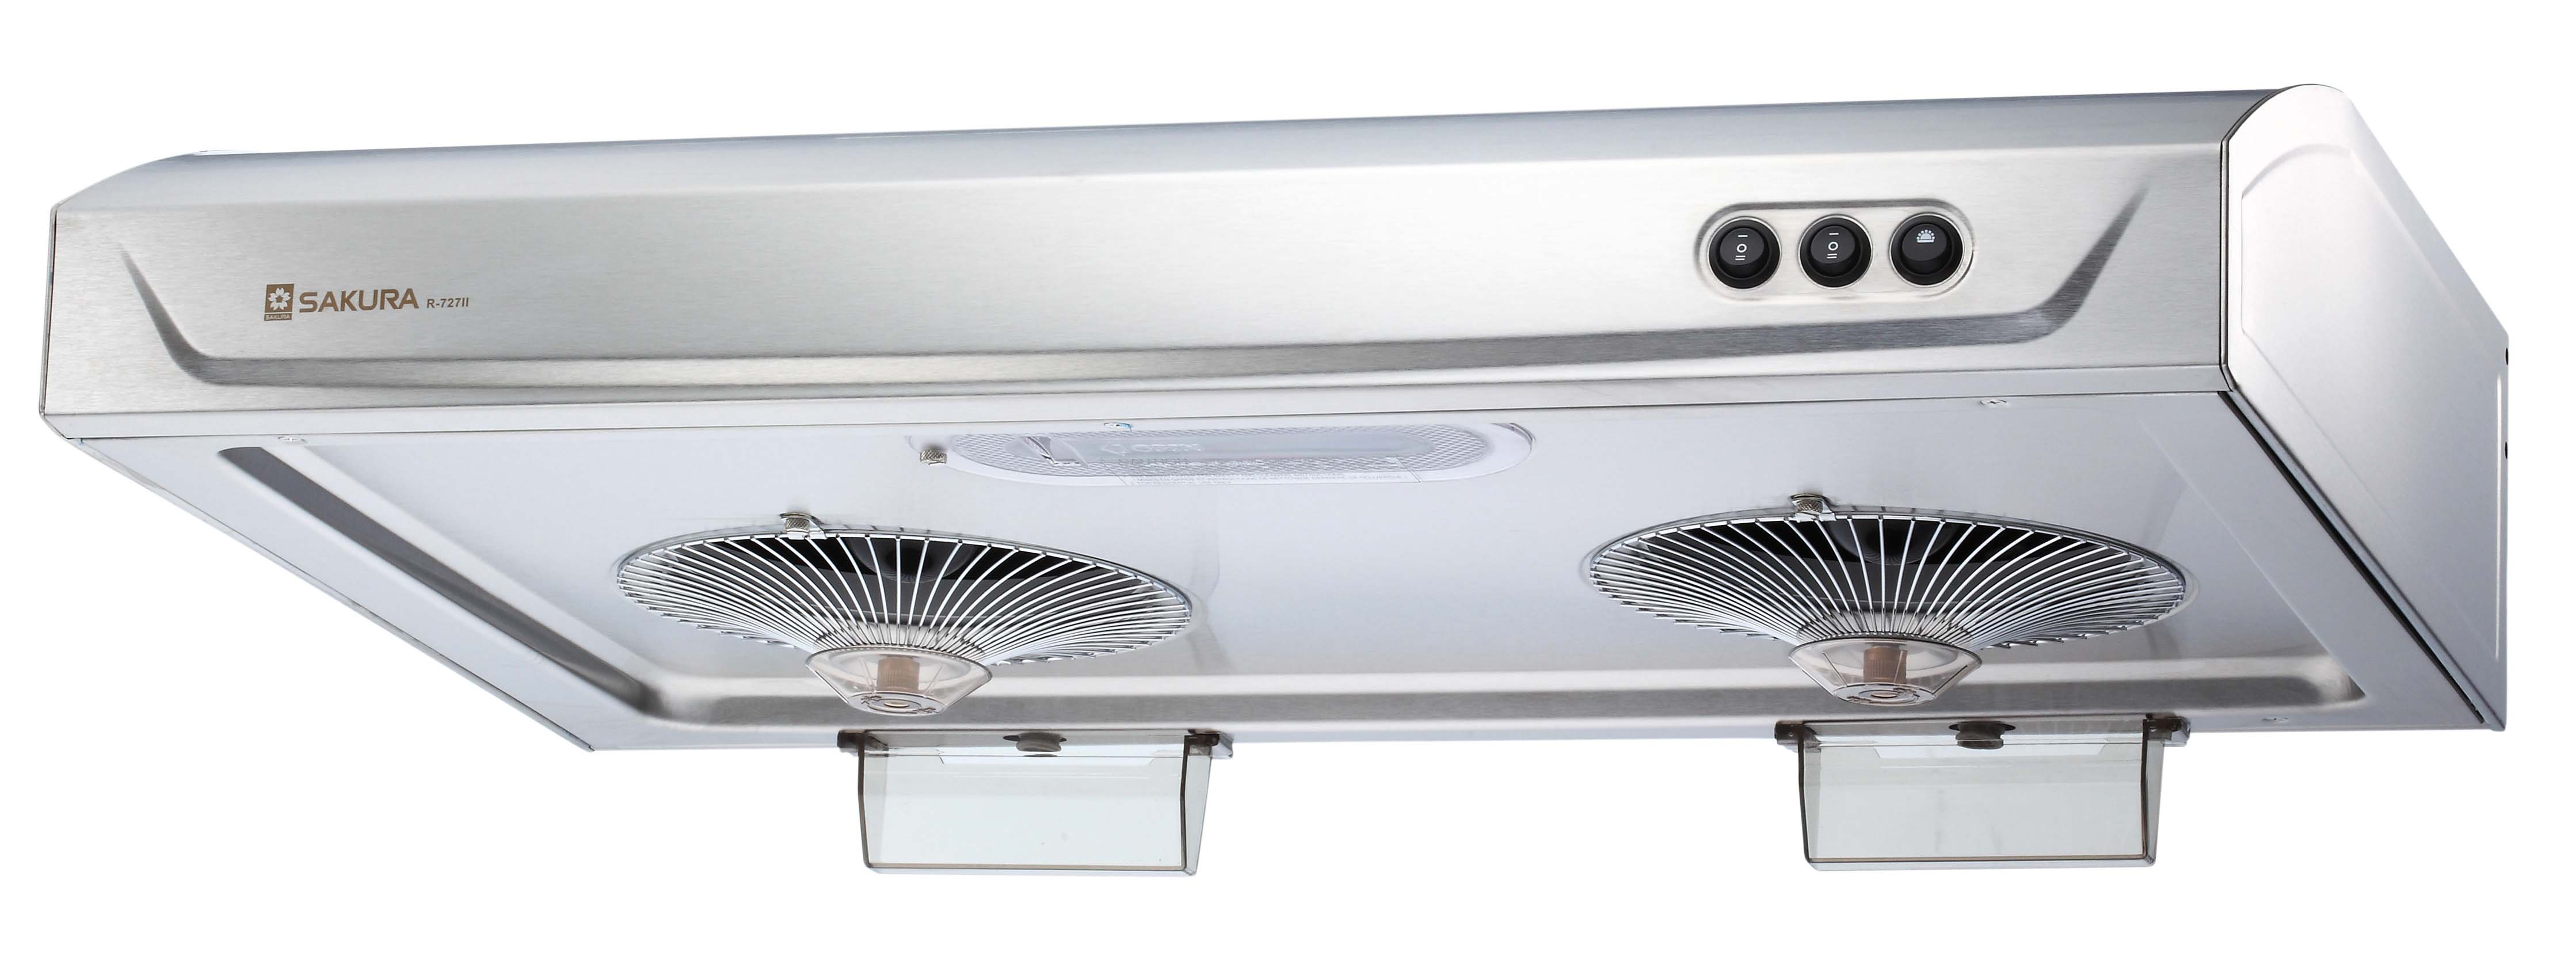 Sakura Kitchen Exhaust Fan Parts - Trendyexaminer